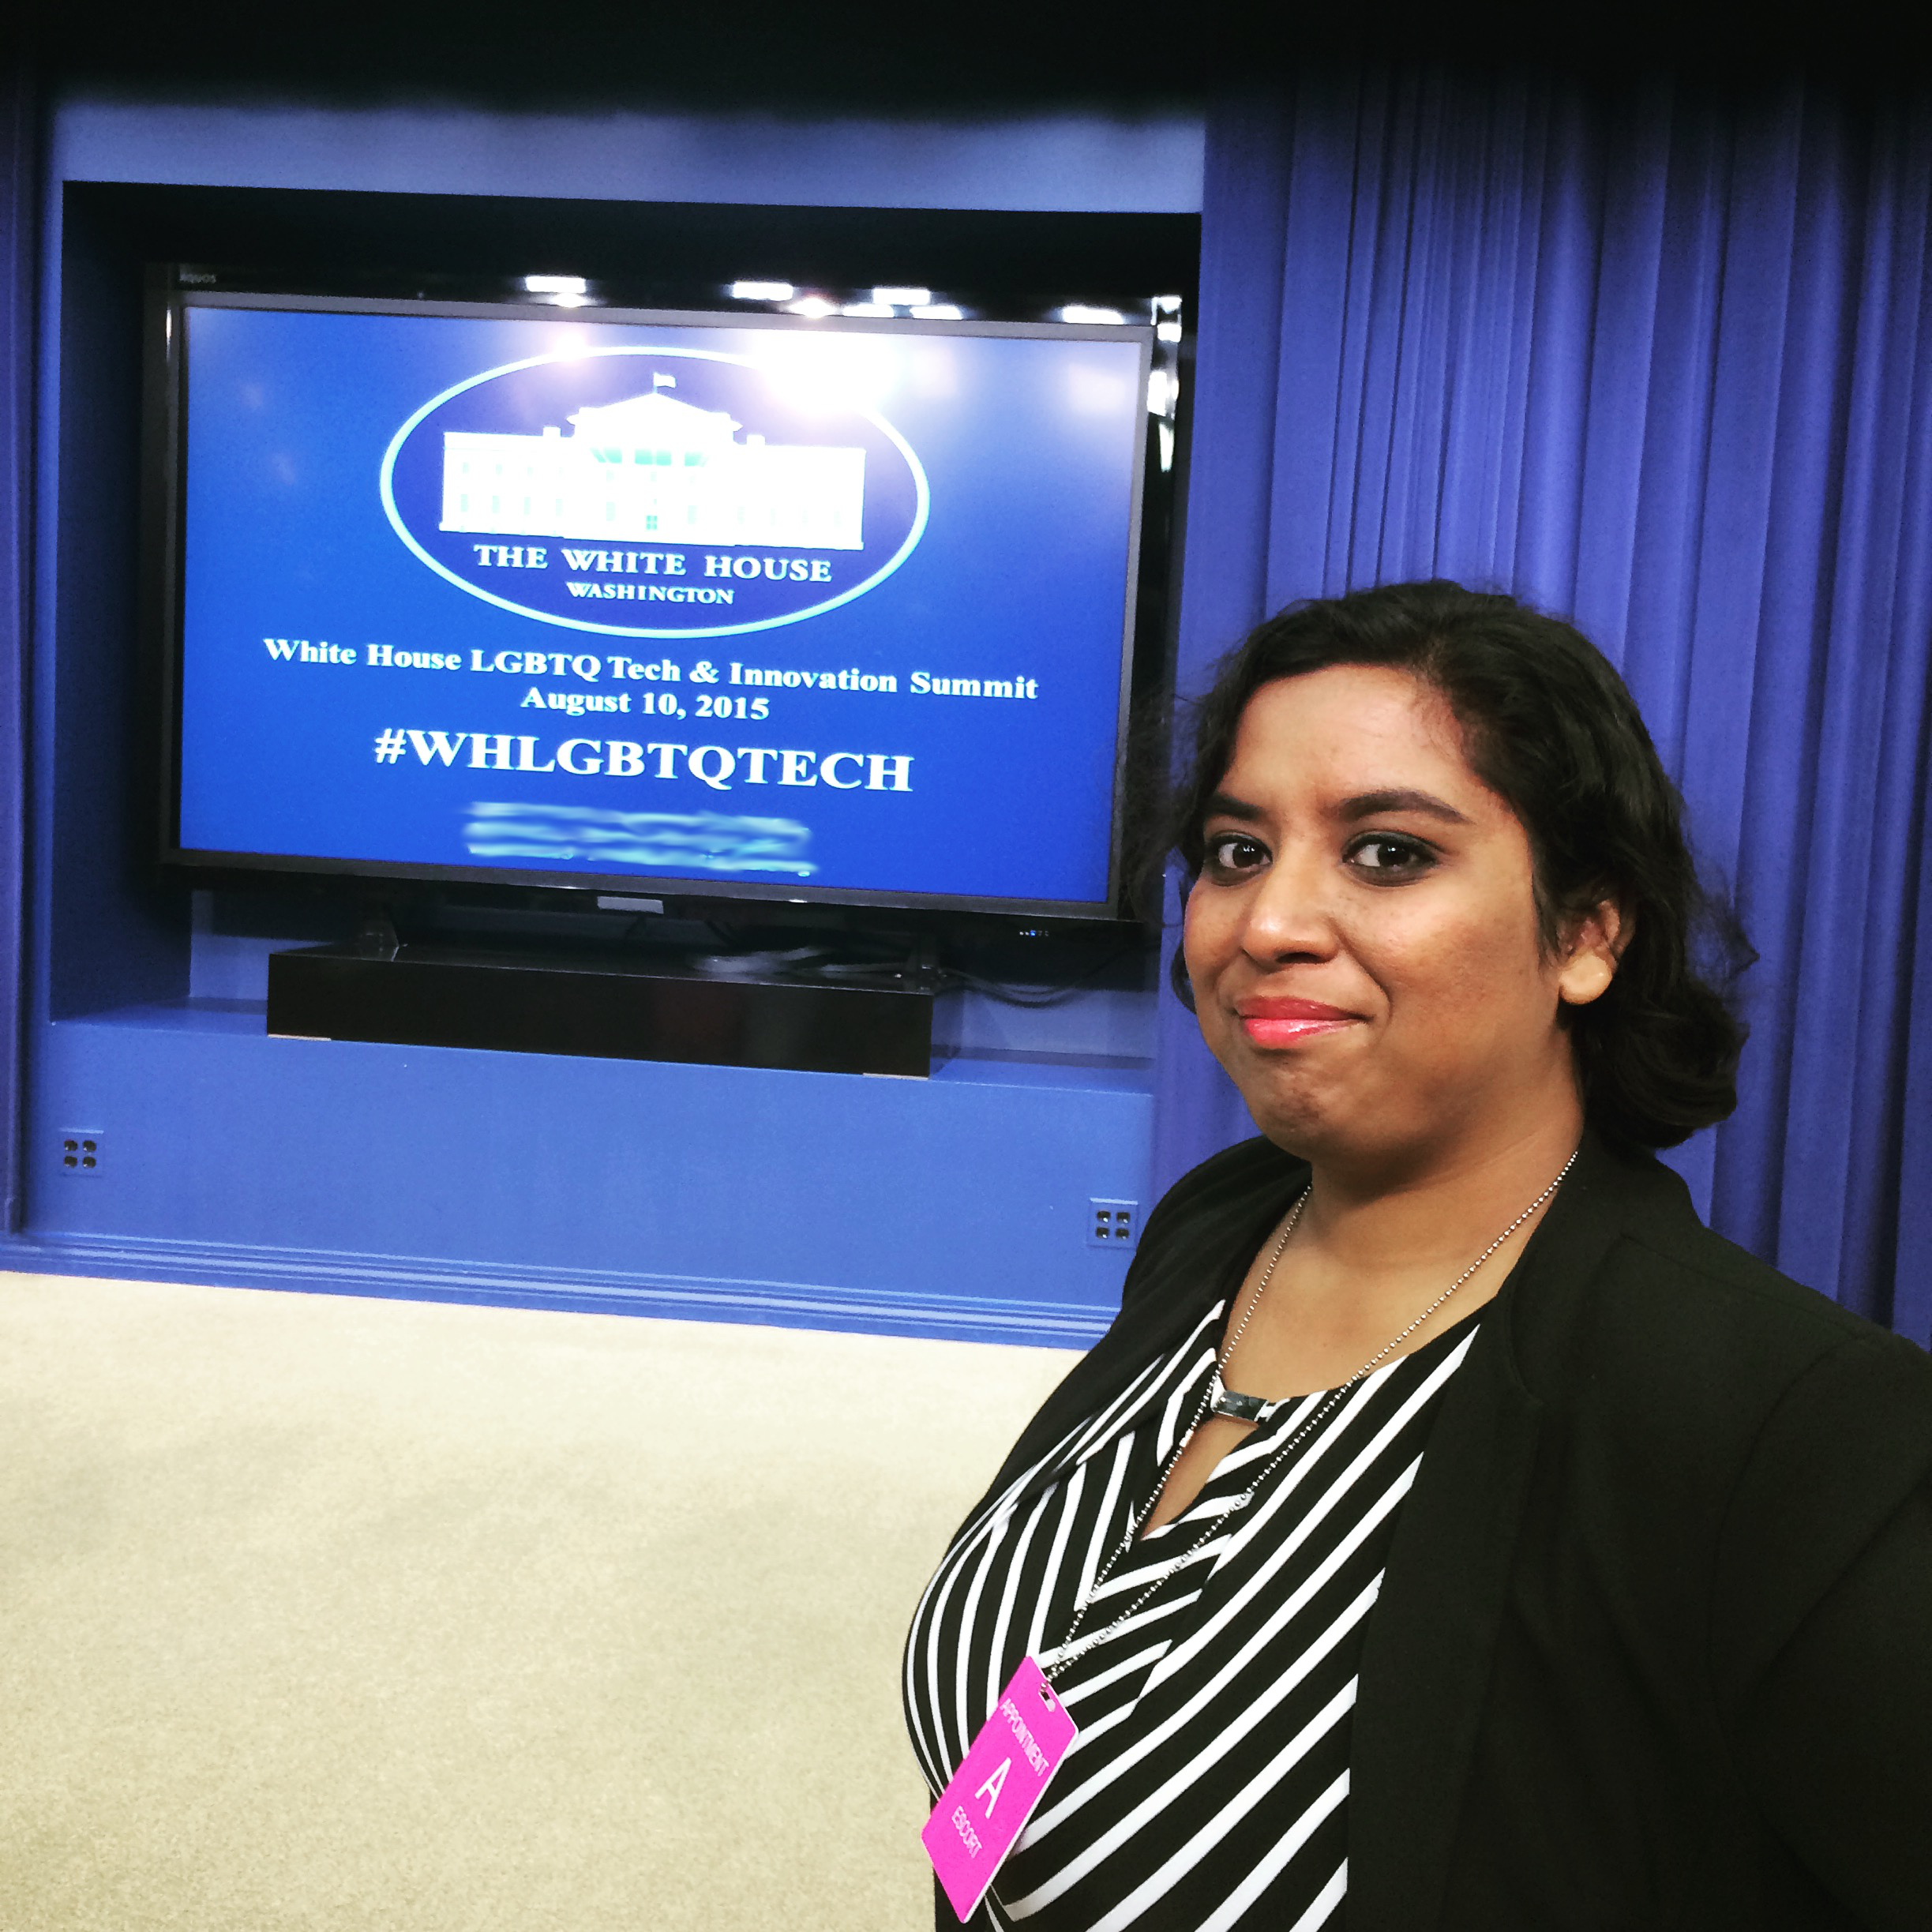 Me at the White House LGBTQ Tech & Innovation Summit in 2015